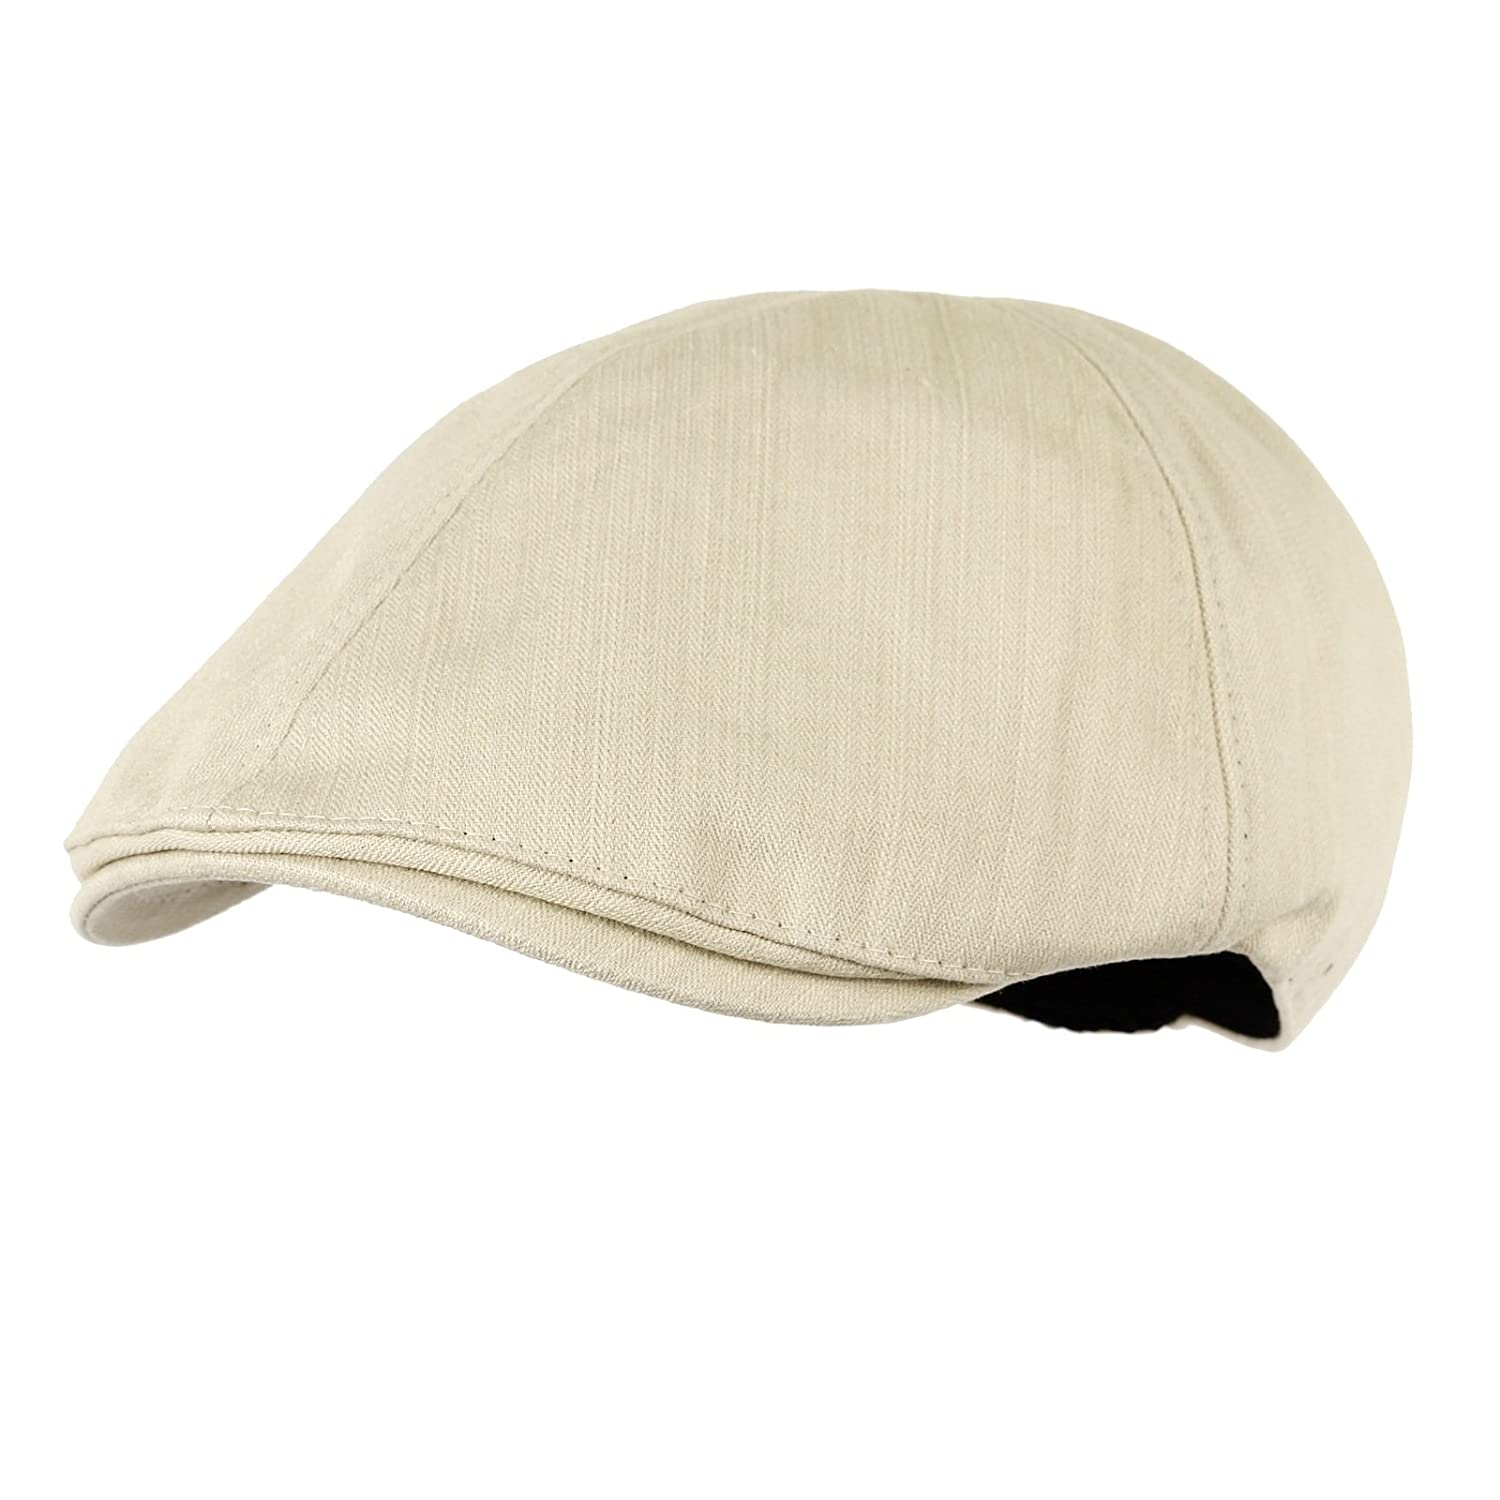 WITHMOONS Coppola Cappello Irish Gatsby Simple Newsboy Hat Flat Cap SL3026 SL3026Ivory